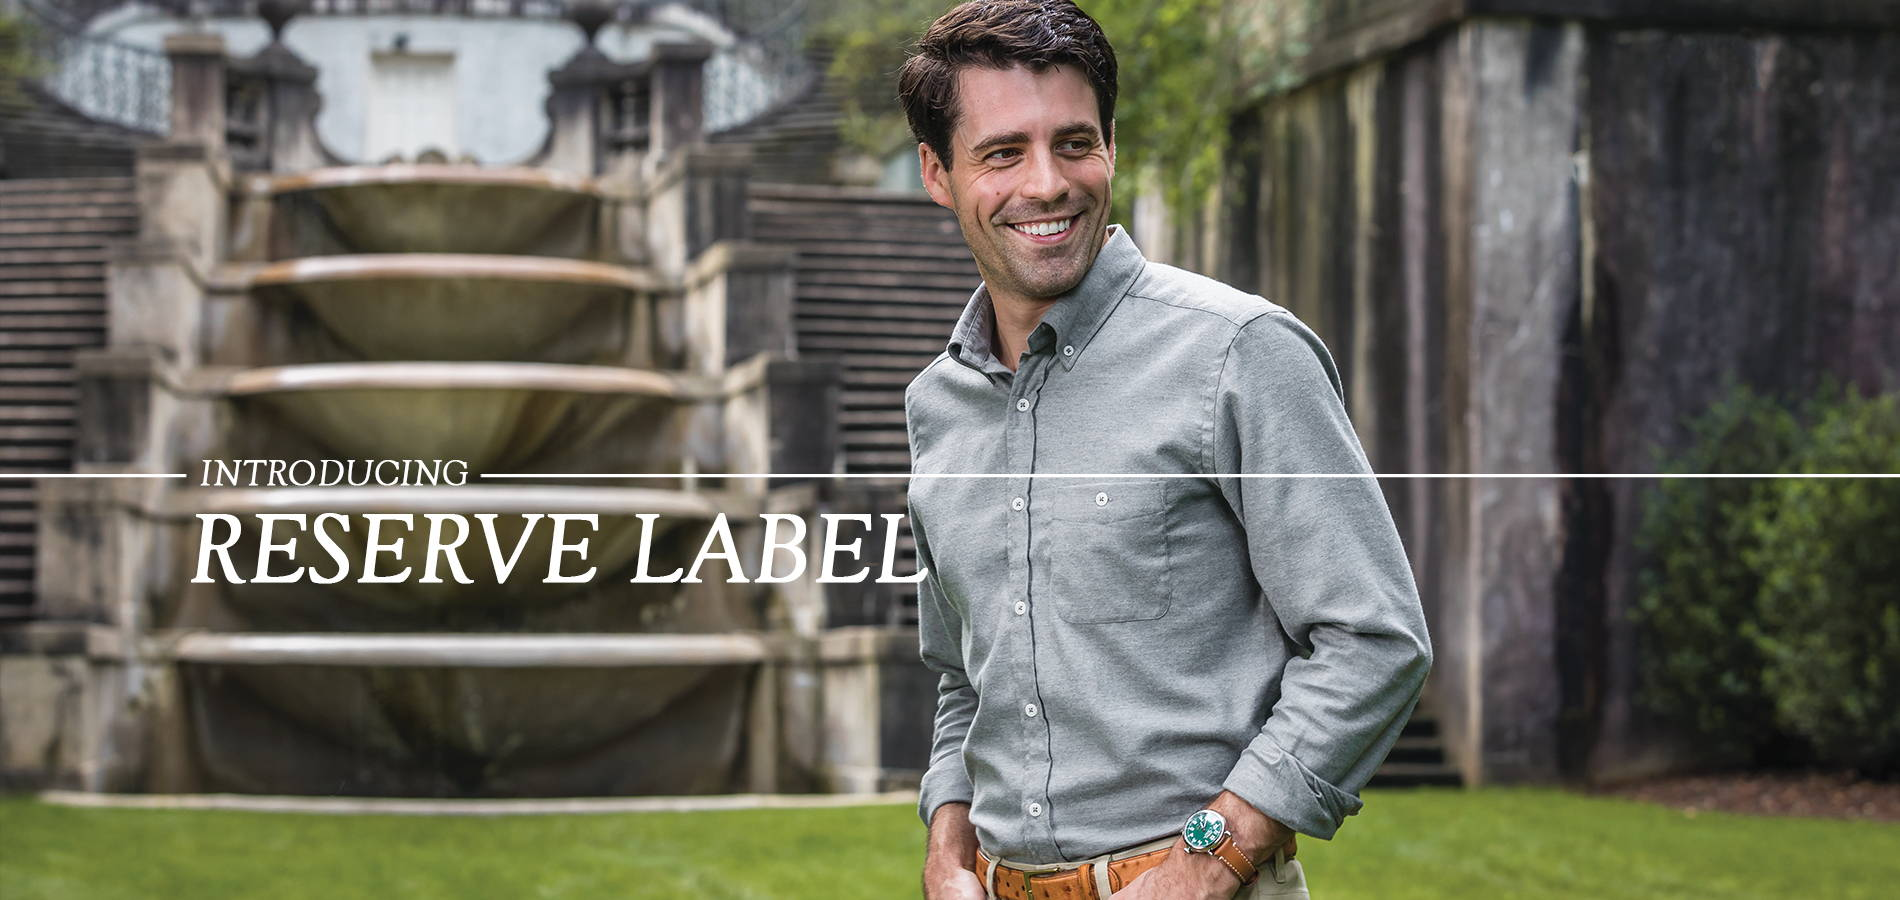 Introducing the Reserve Label